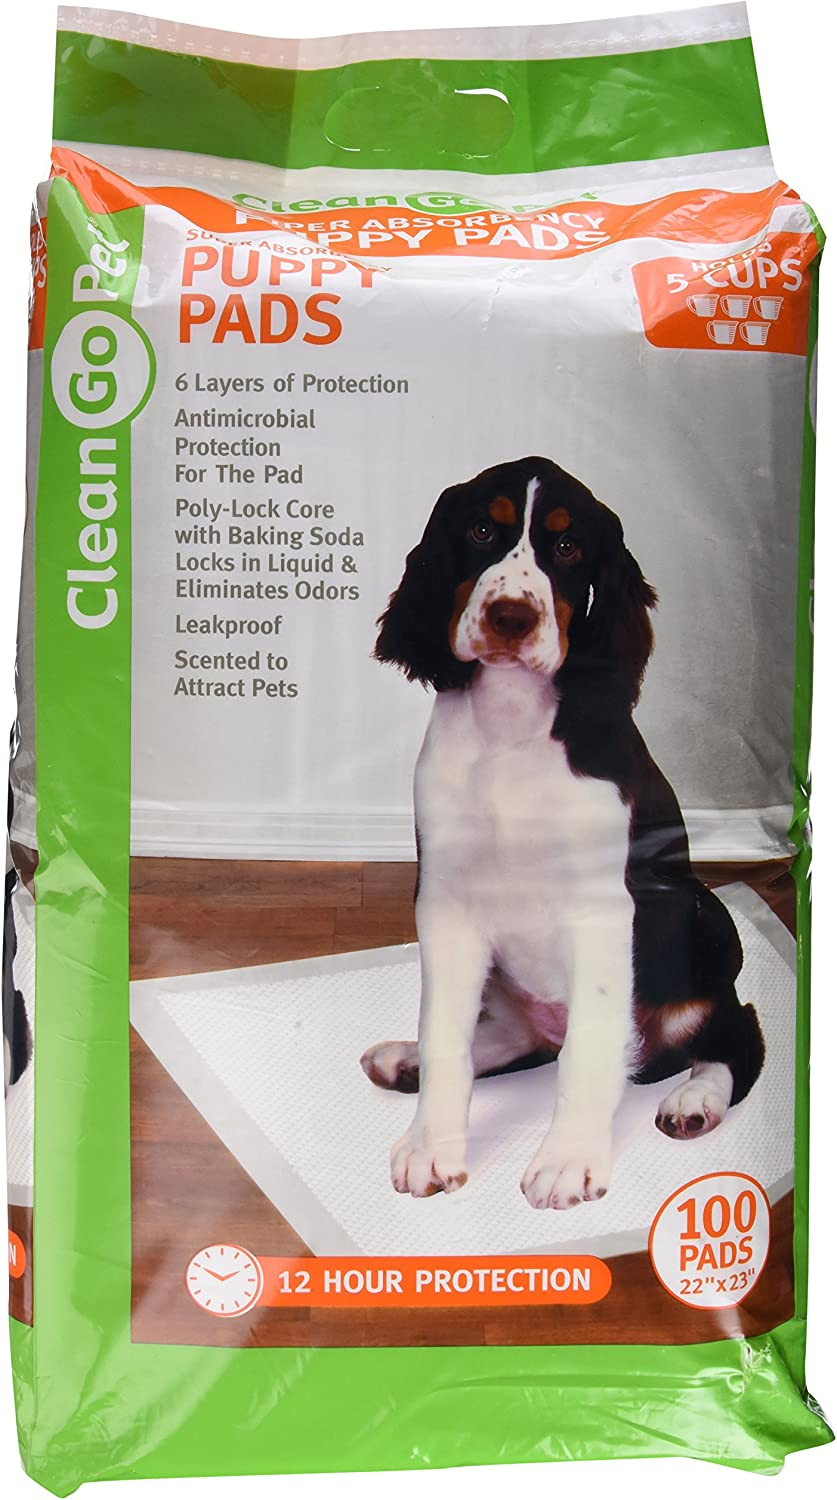 Clean Go Pet ZW1956 89 Super Absorb Puppy Pads, 100PackAntiMicrobial, Hold 5 Cups, Scented to Attract Puppies